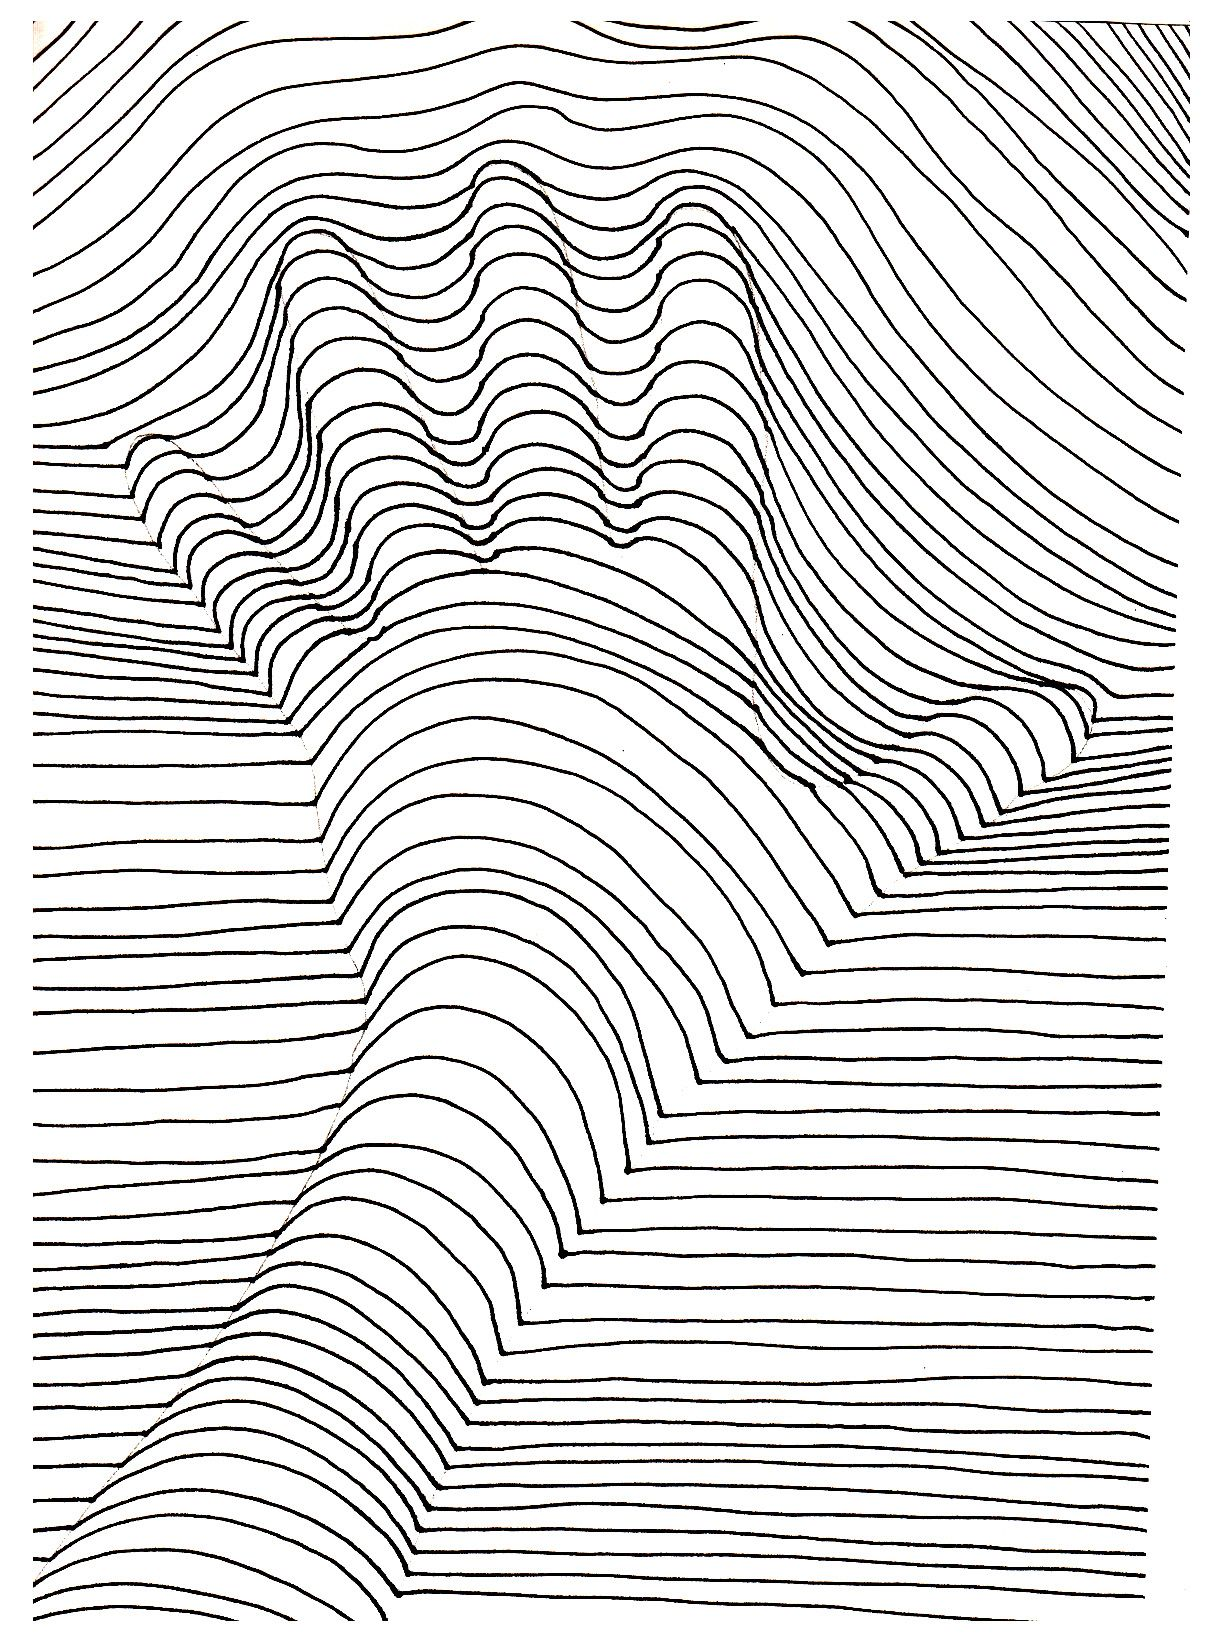 op art coloring pages - photo#4